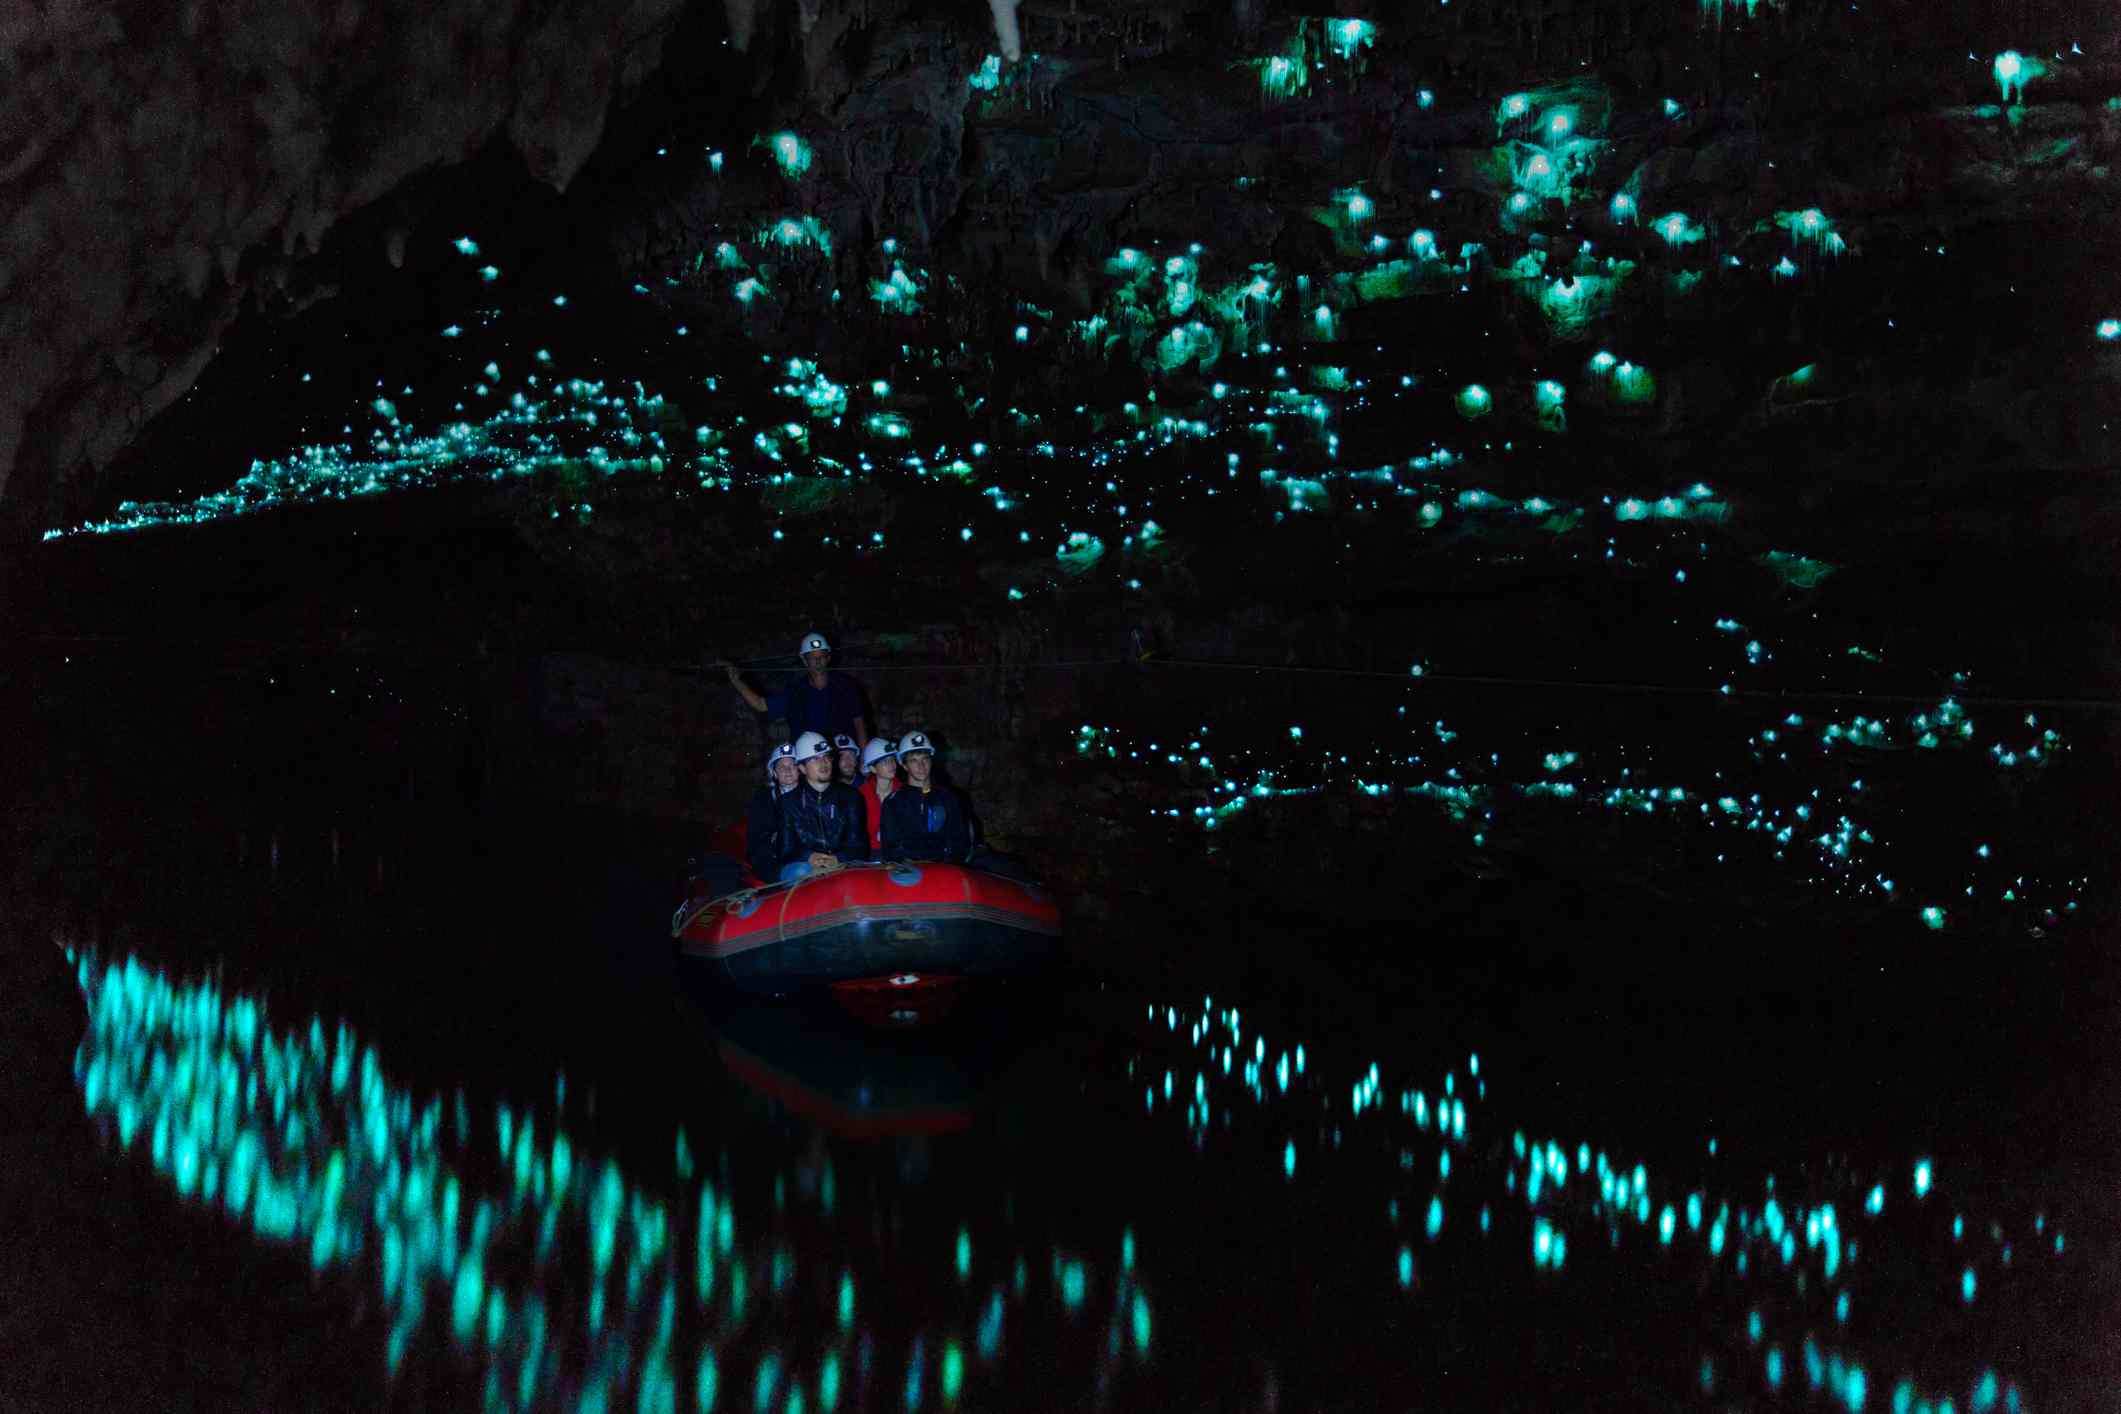 raft with passengers floating through a dark cave with glowworms